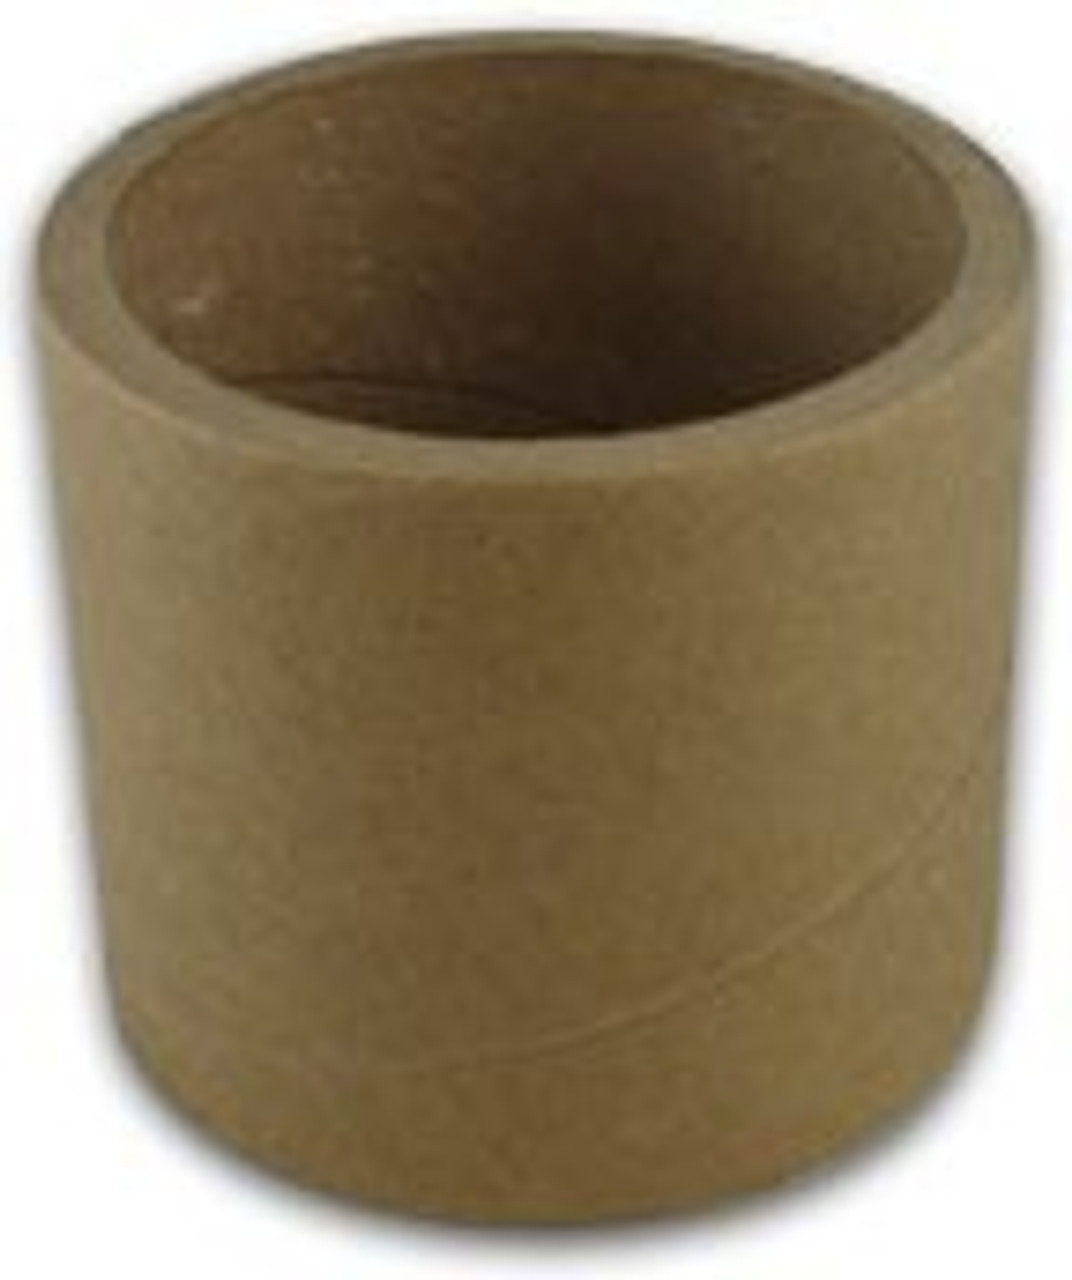 "Empty Cores 3"" X 2 1/8"" wide - Box of 25 